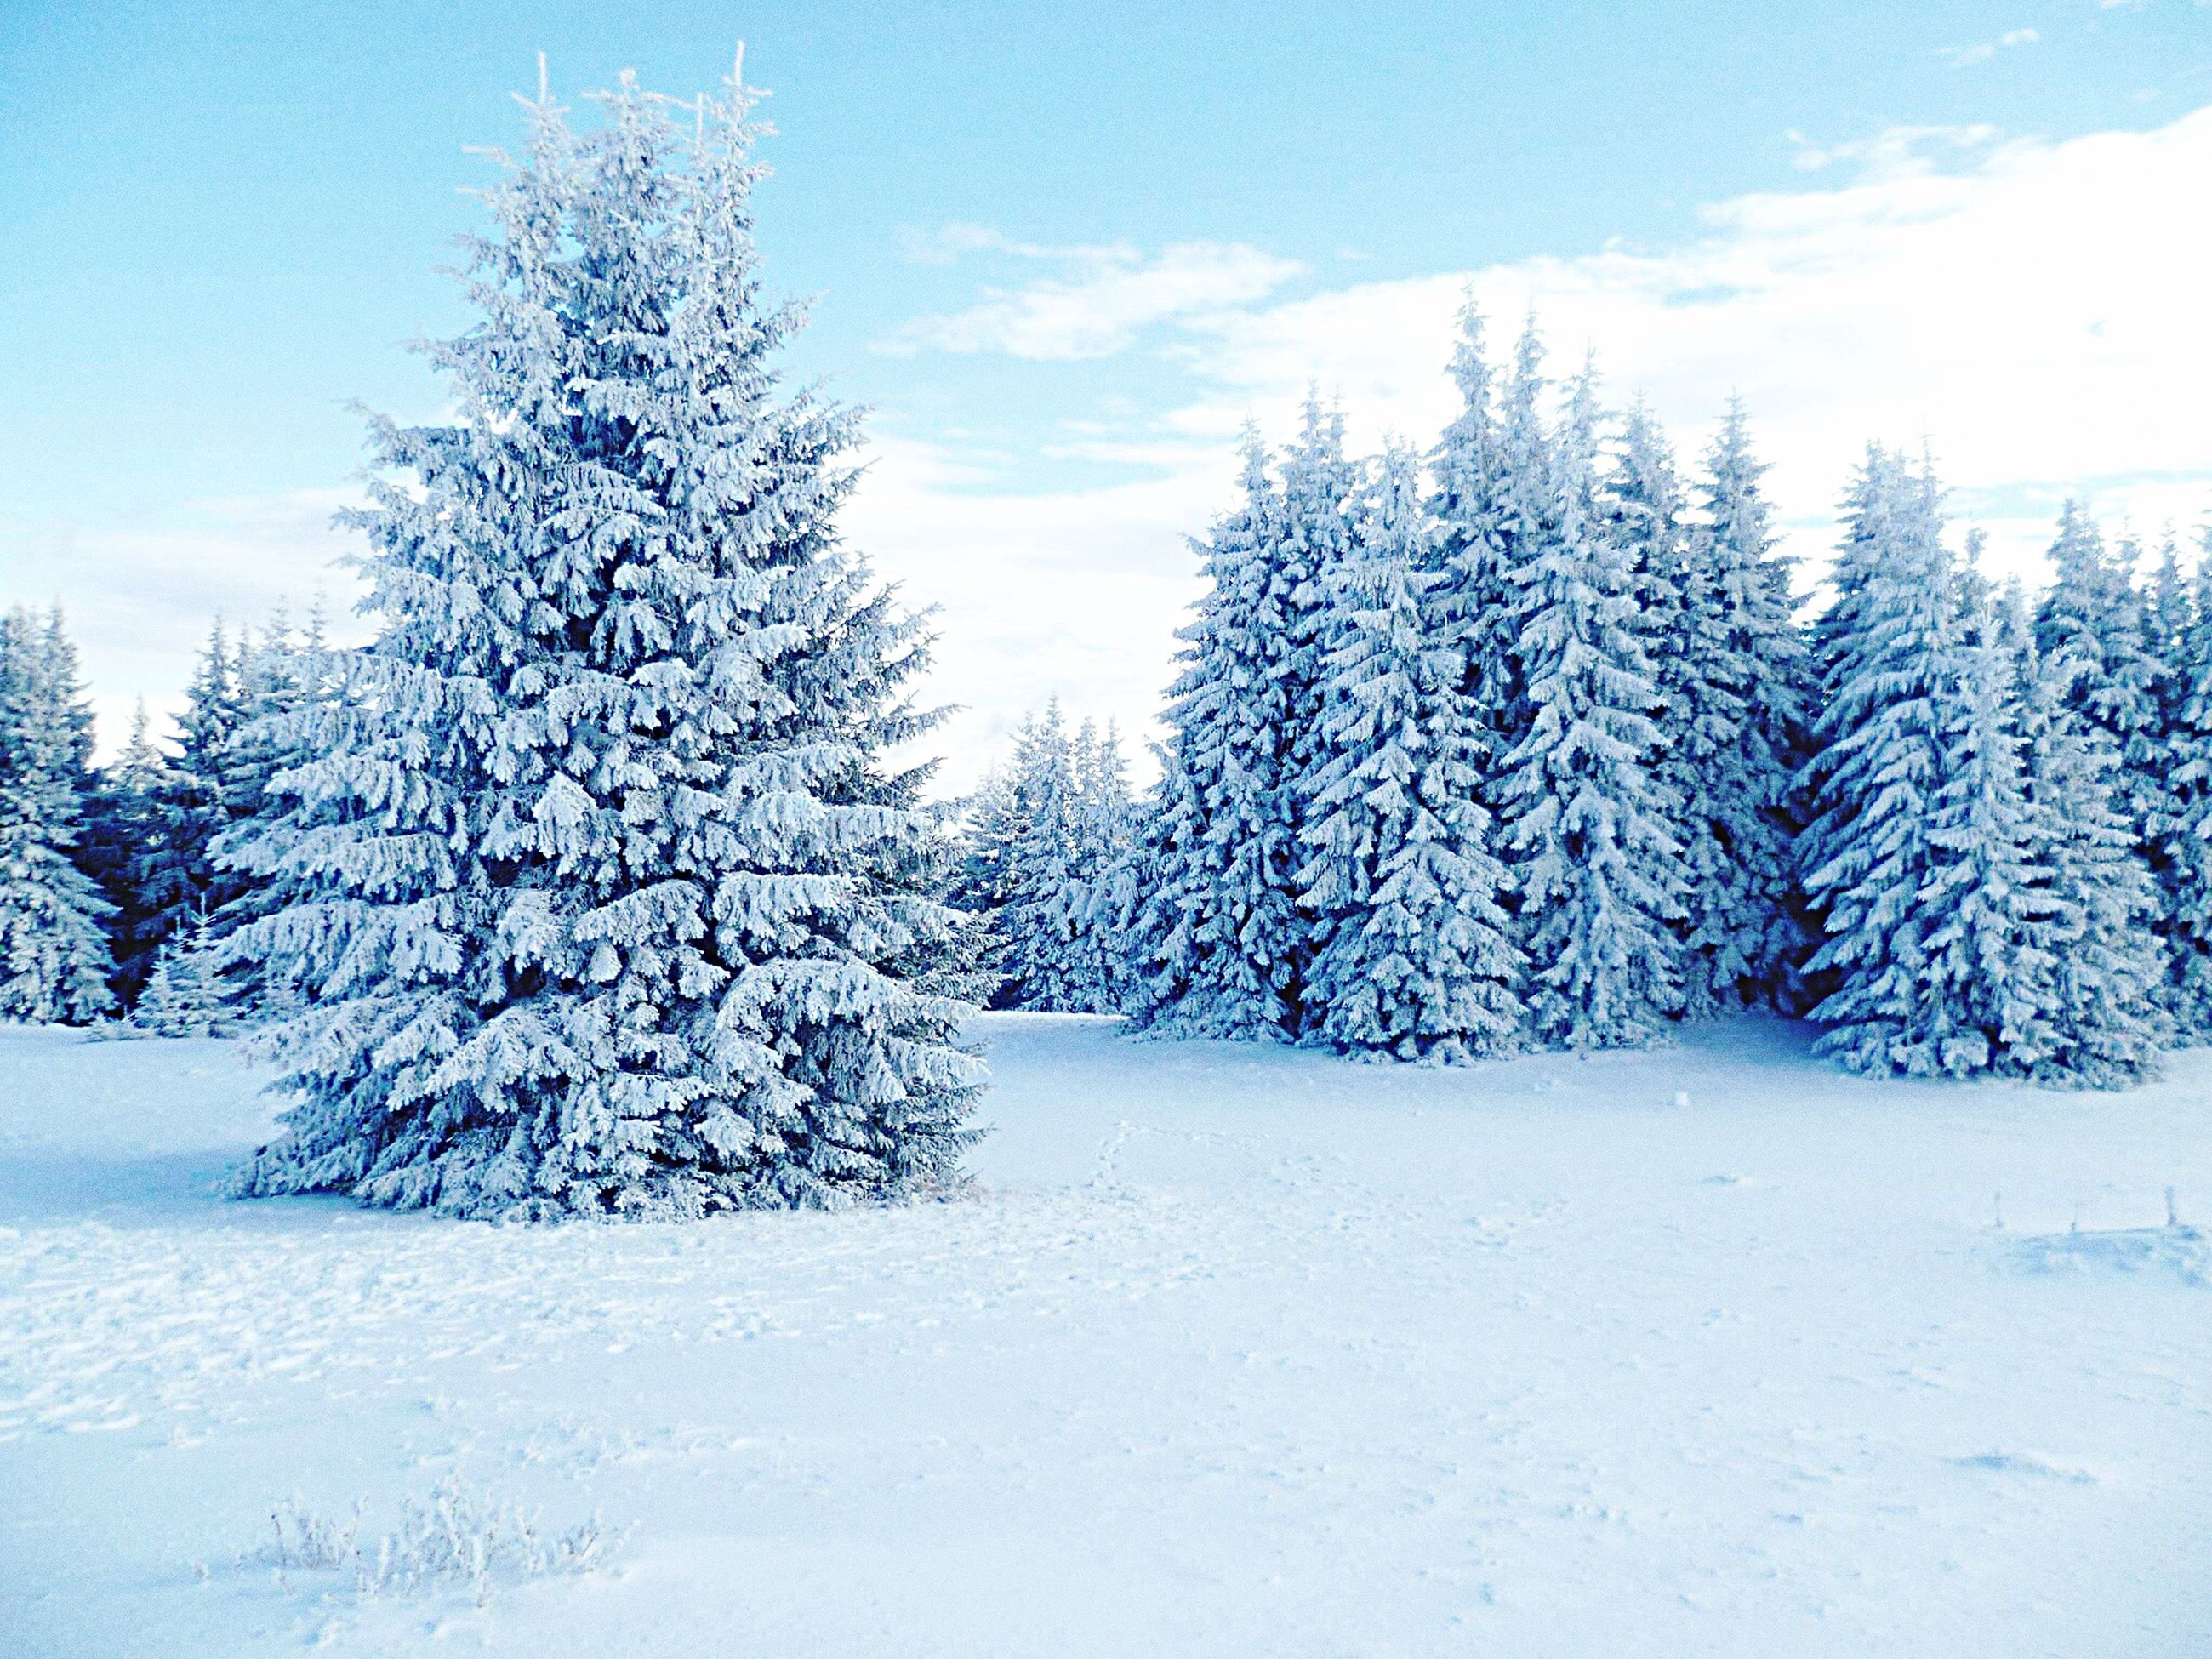 snow, winter, cold temperature, tree, blue, nature, frozen, no people, christmas tree, tranquil scene, christmas, scenics, tranquility, outdoors, day, landscape, snowing, beauty in nature, sky